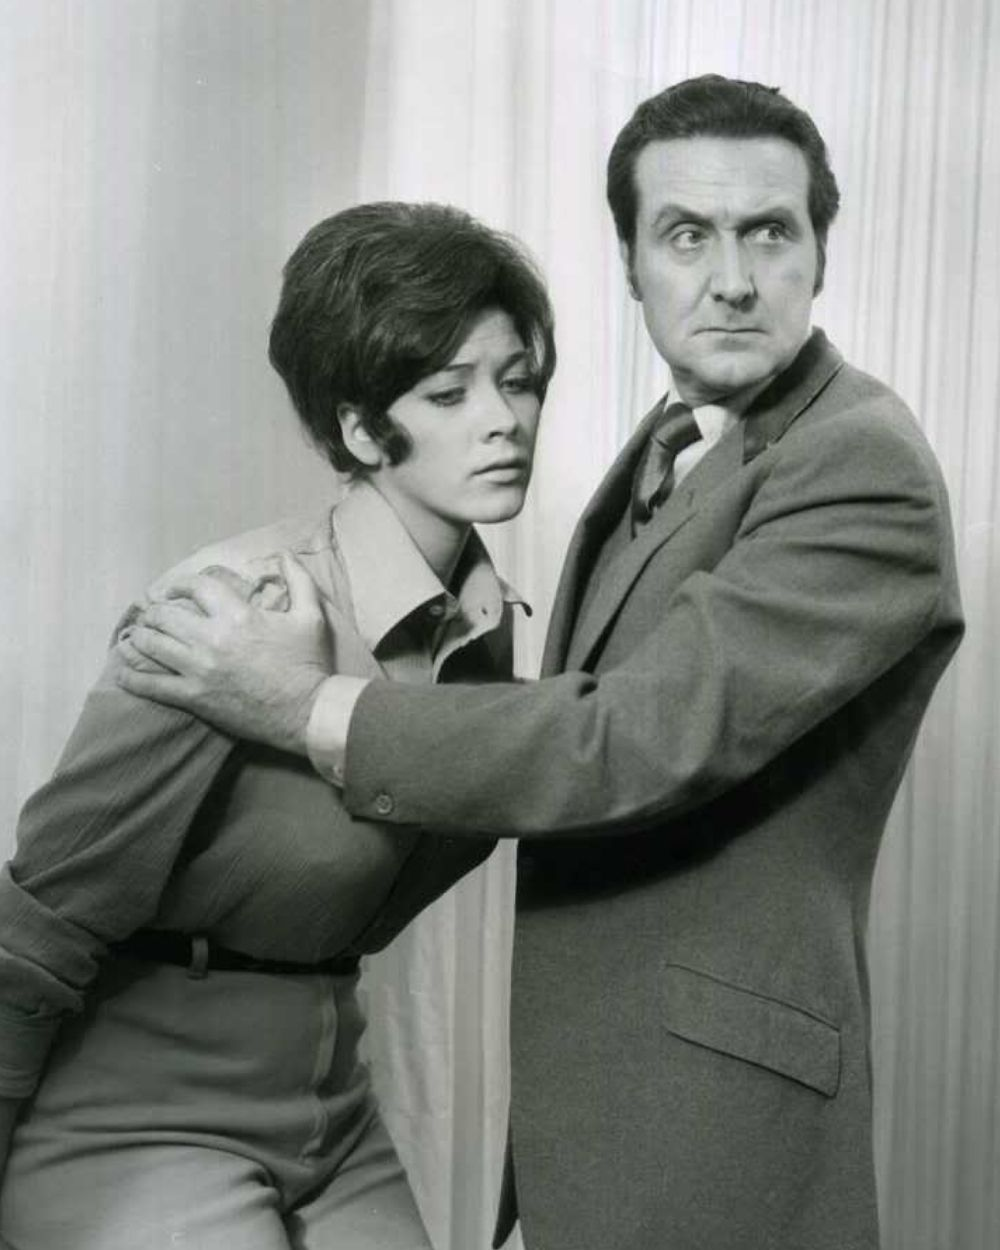 Tara King (Linda Thorson) & John Steed (Patrick Macnee) in the Avengers episode 'Love All'